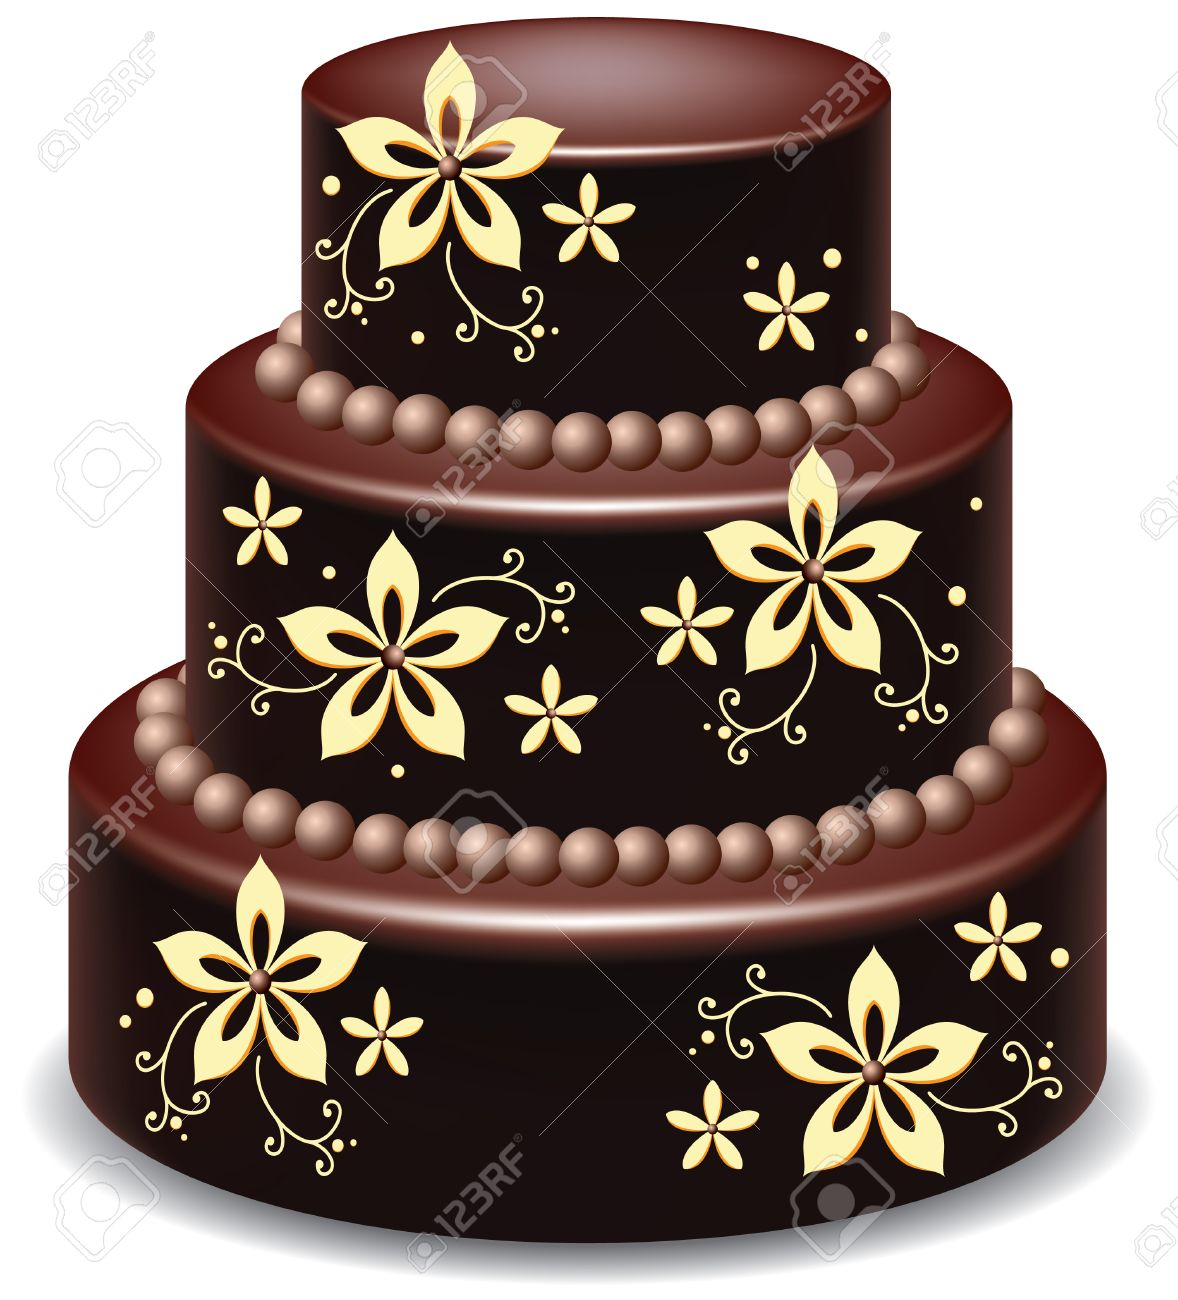 Big Delicious Chocolate Cake Royalty Free Cliparts, Vectors, And ...